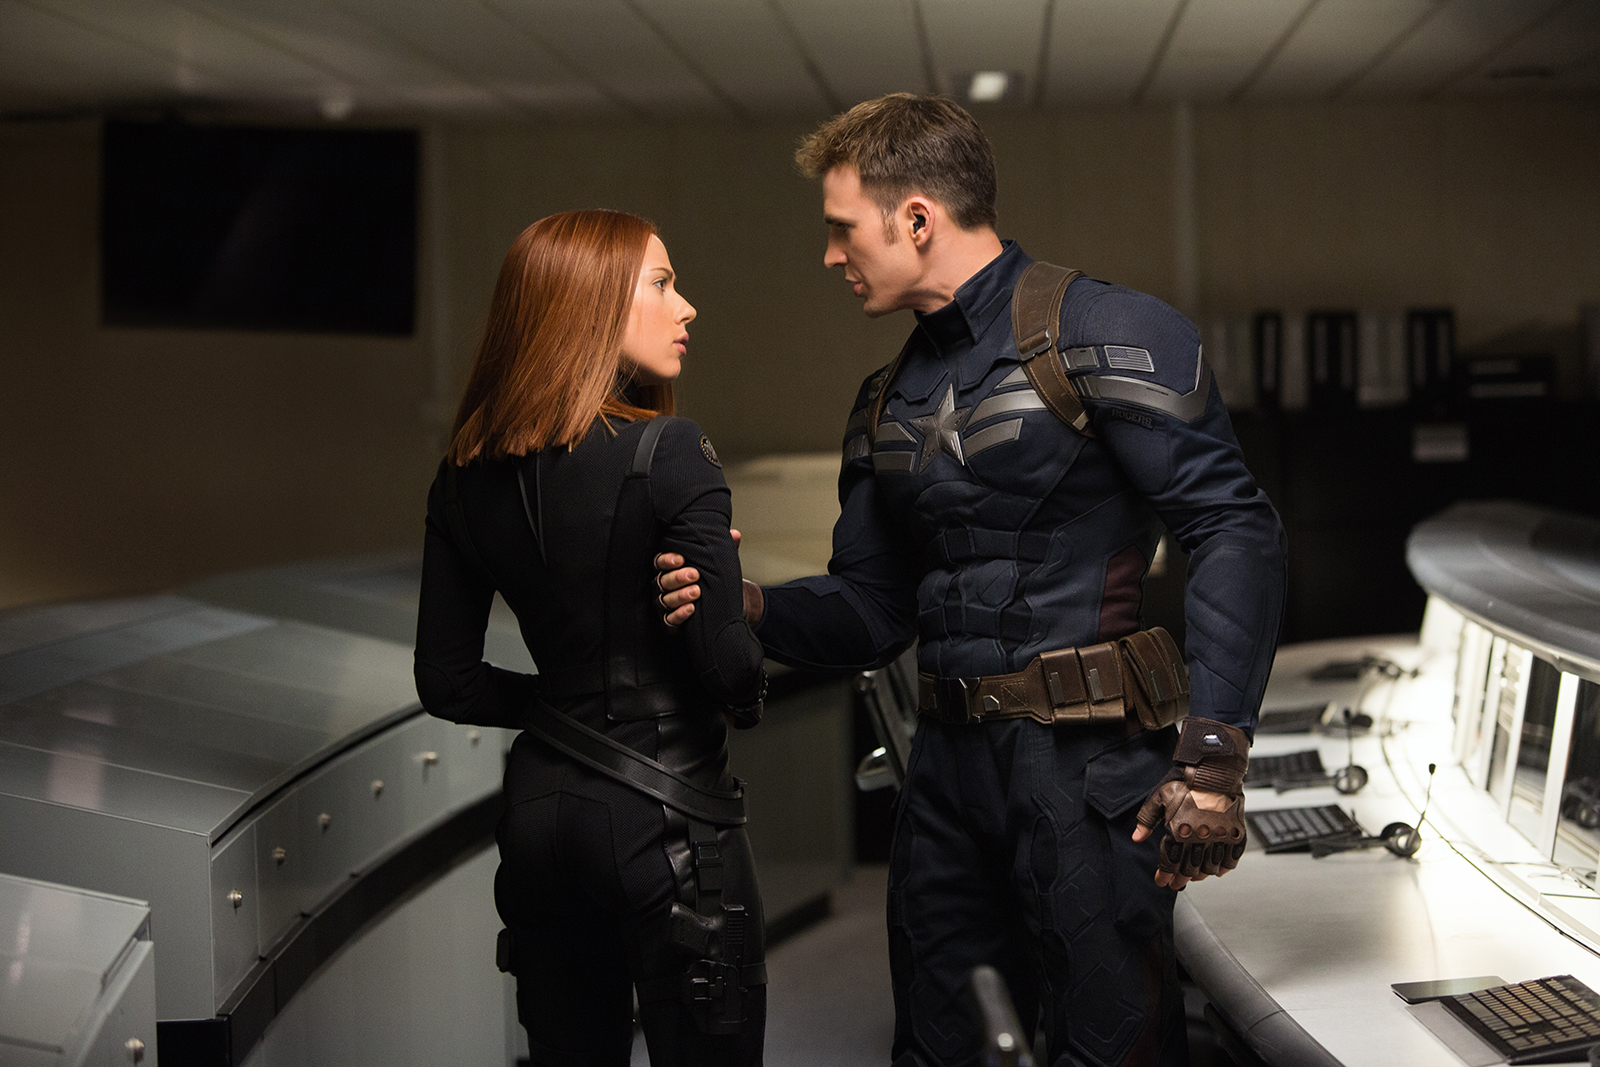 Captain America The Winter Soldier-Official Poster Banner PROMO PHOTOS-02JANEIRO2013-13